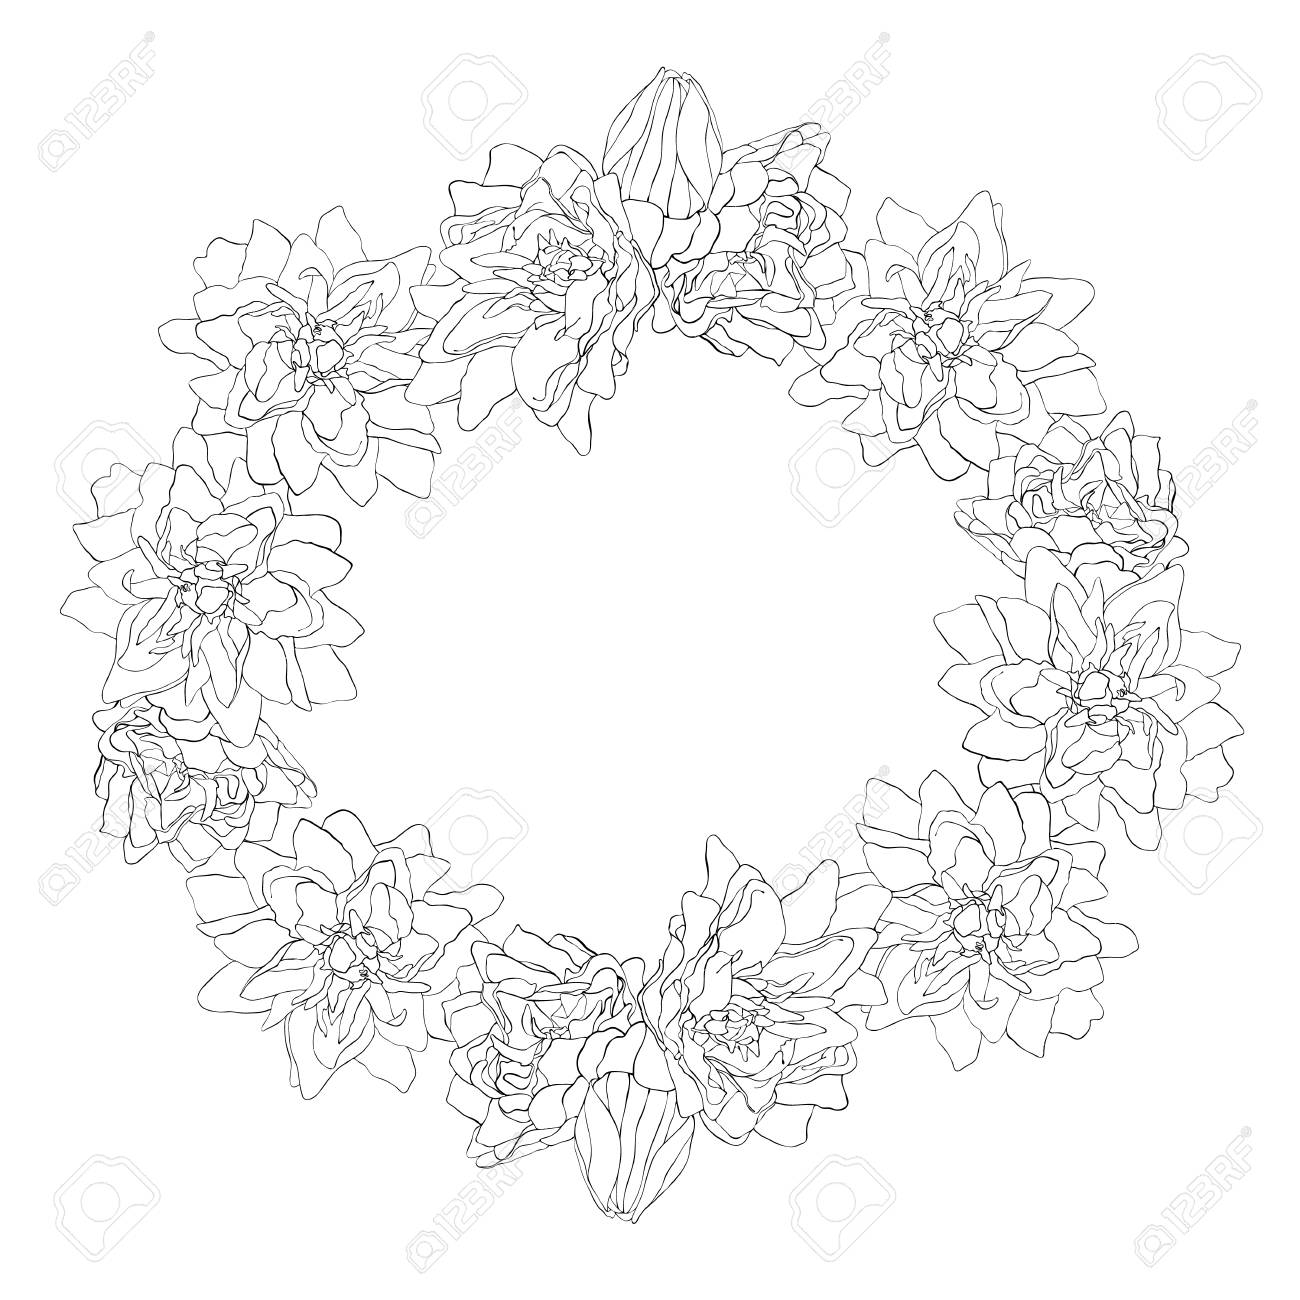 Beautiful monochrome sketch, black and white flower. Circle shape. Vector illustration isolated on white background. - 125092198